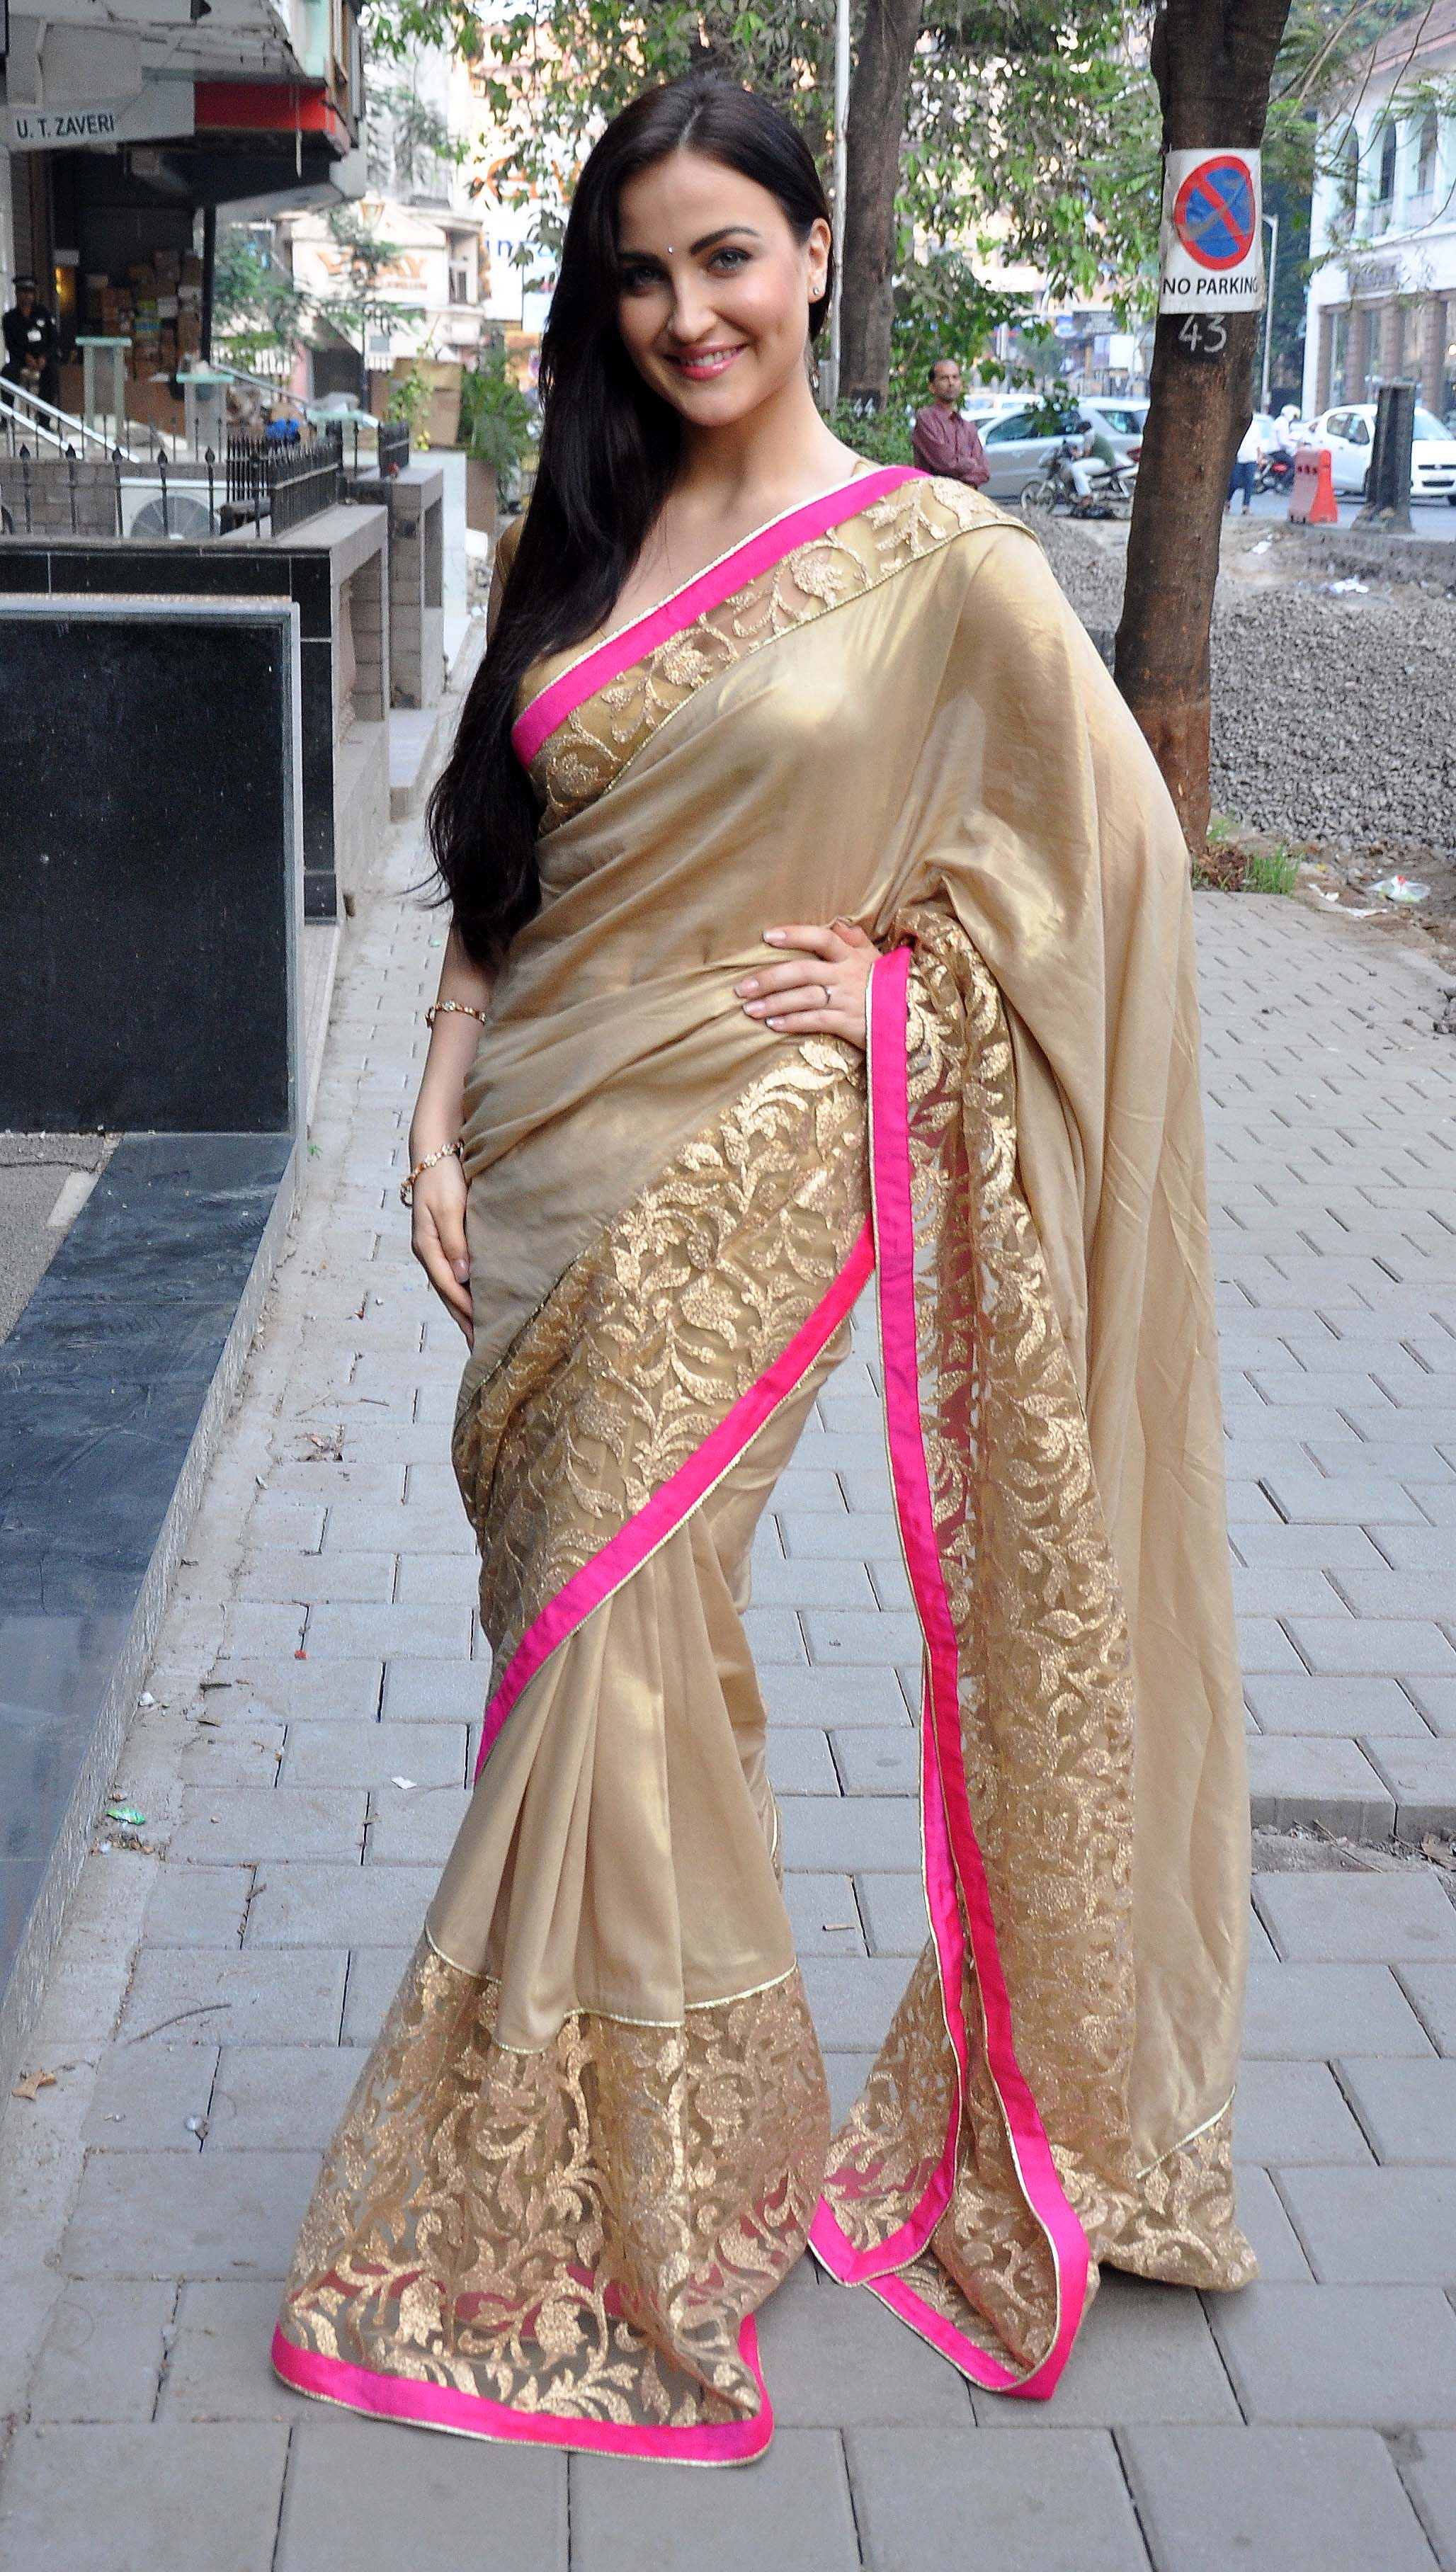 http://www.phototadka.com/wp-content/uploads/2017/06/Elli-Avram-looking-hot-in-Sarees.jpg Madhubala Serial Golden Saree